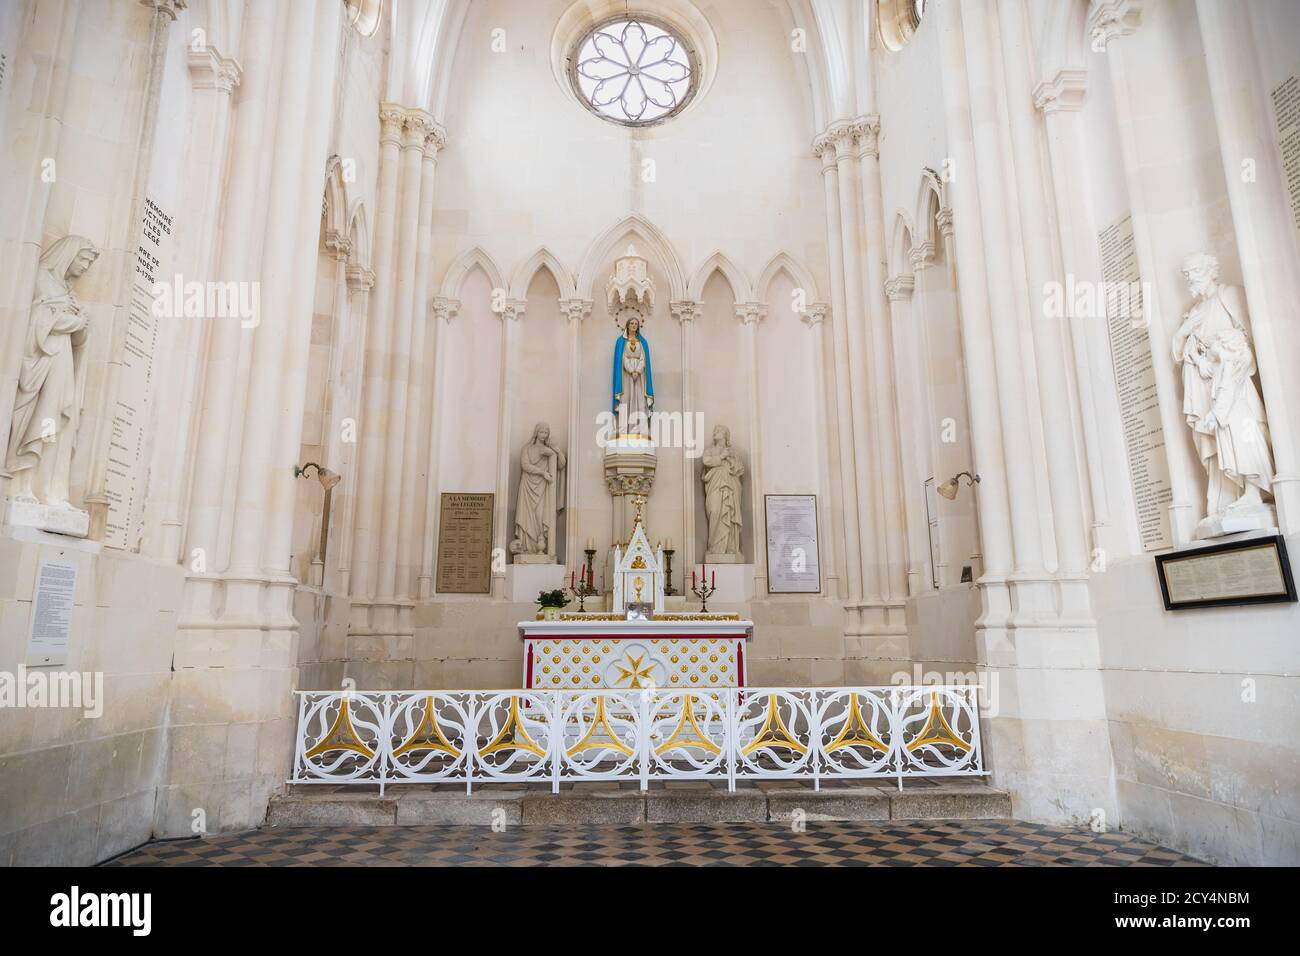 Lege, Loire-Atlantique, France - September 21, 2020: architectural detail of the interior of the Notre-Dame-de-Pitie chapel in the center of a typical Stock Photo